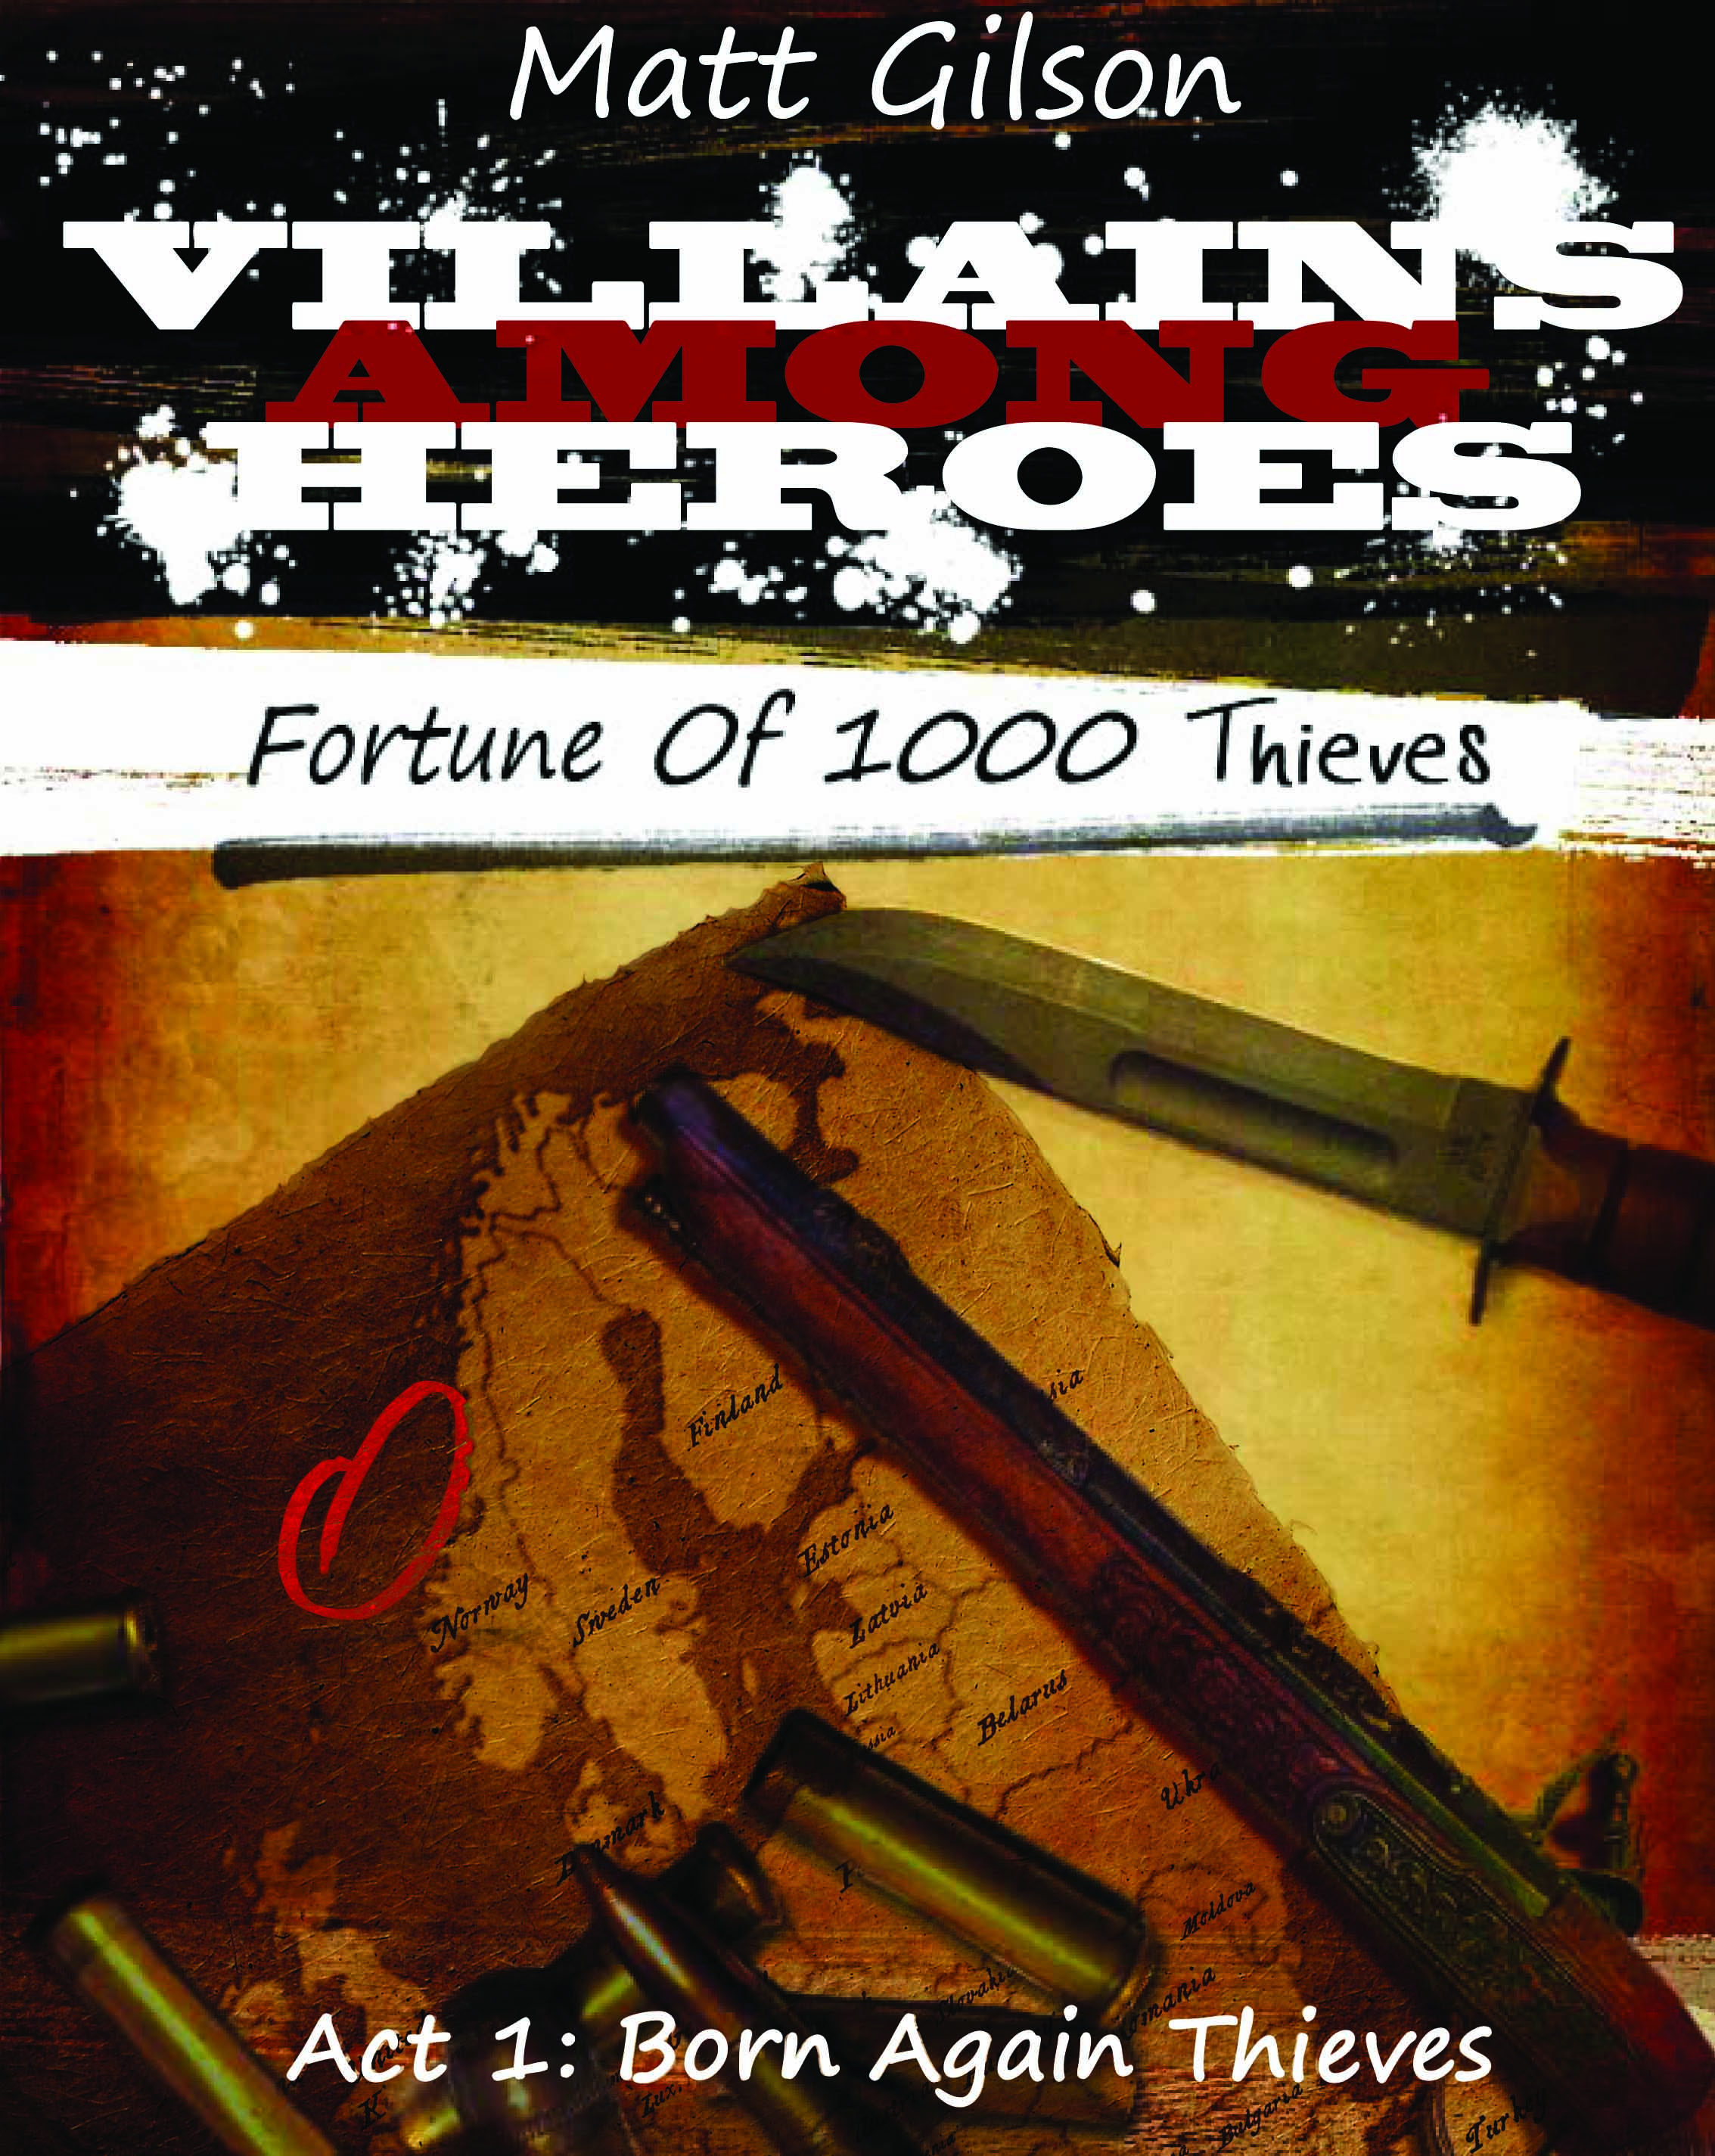 Thieves Book Cover